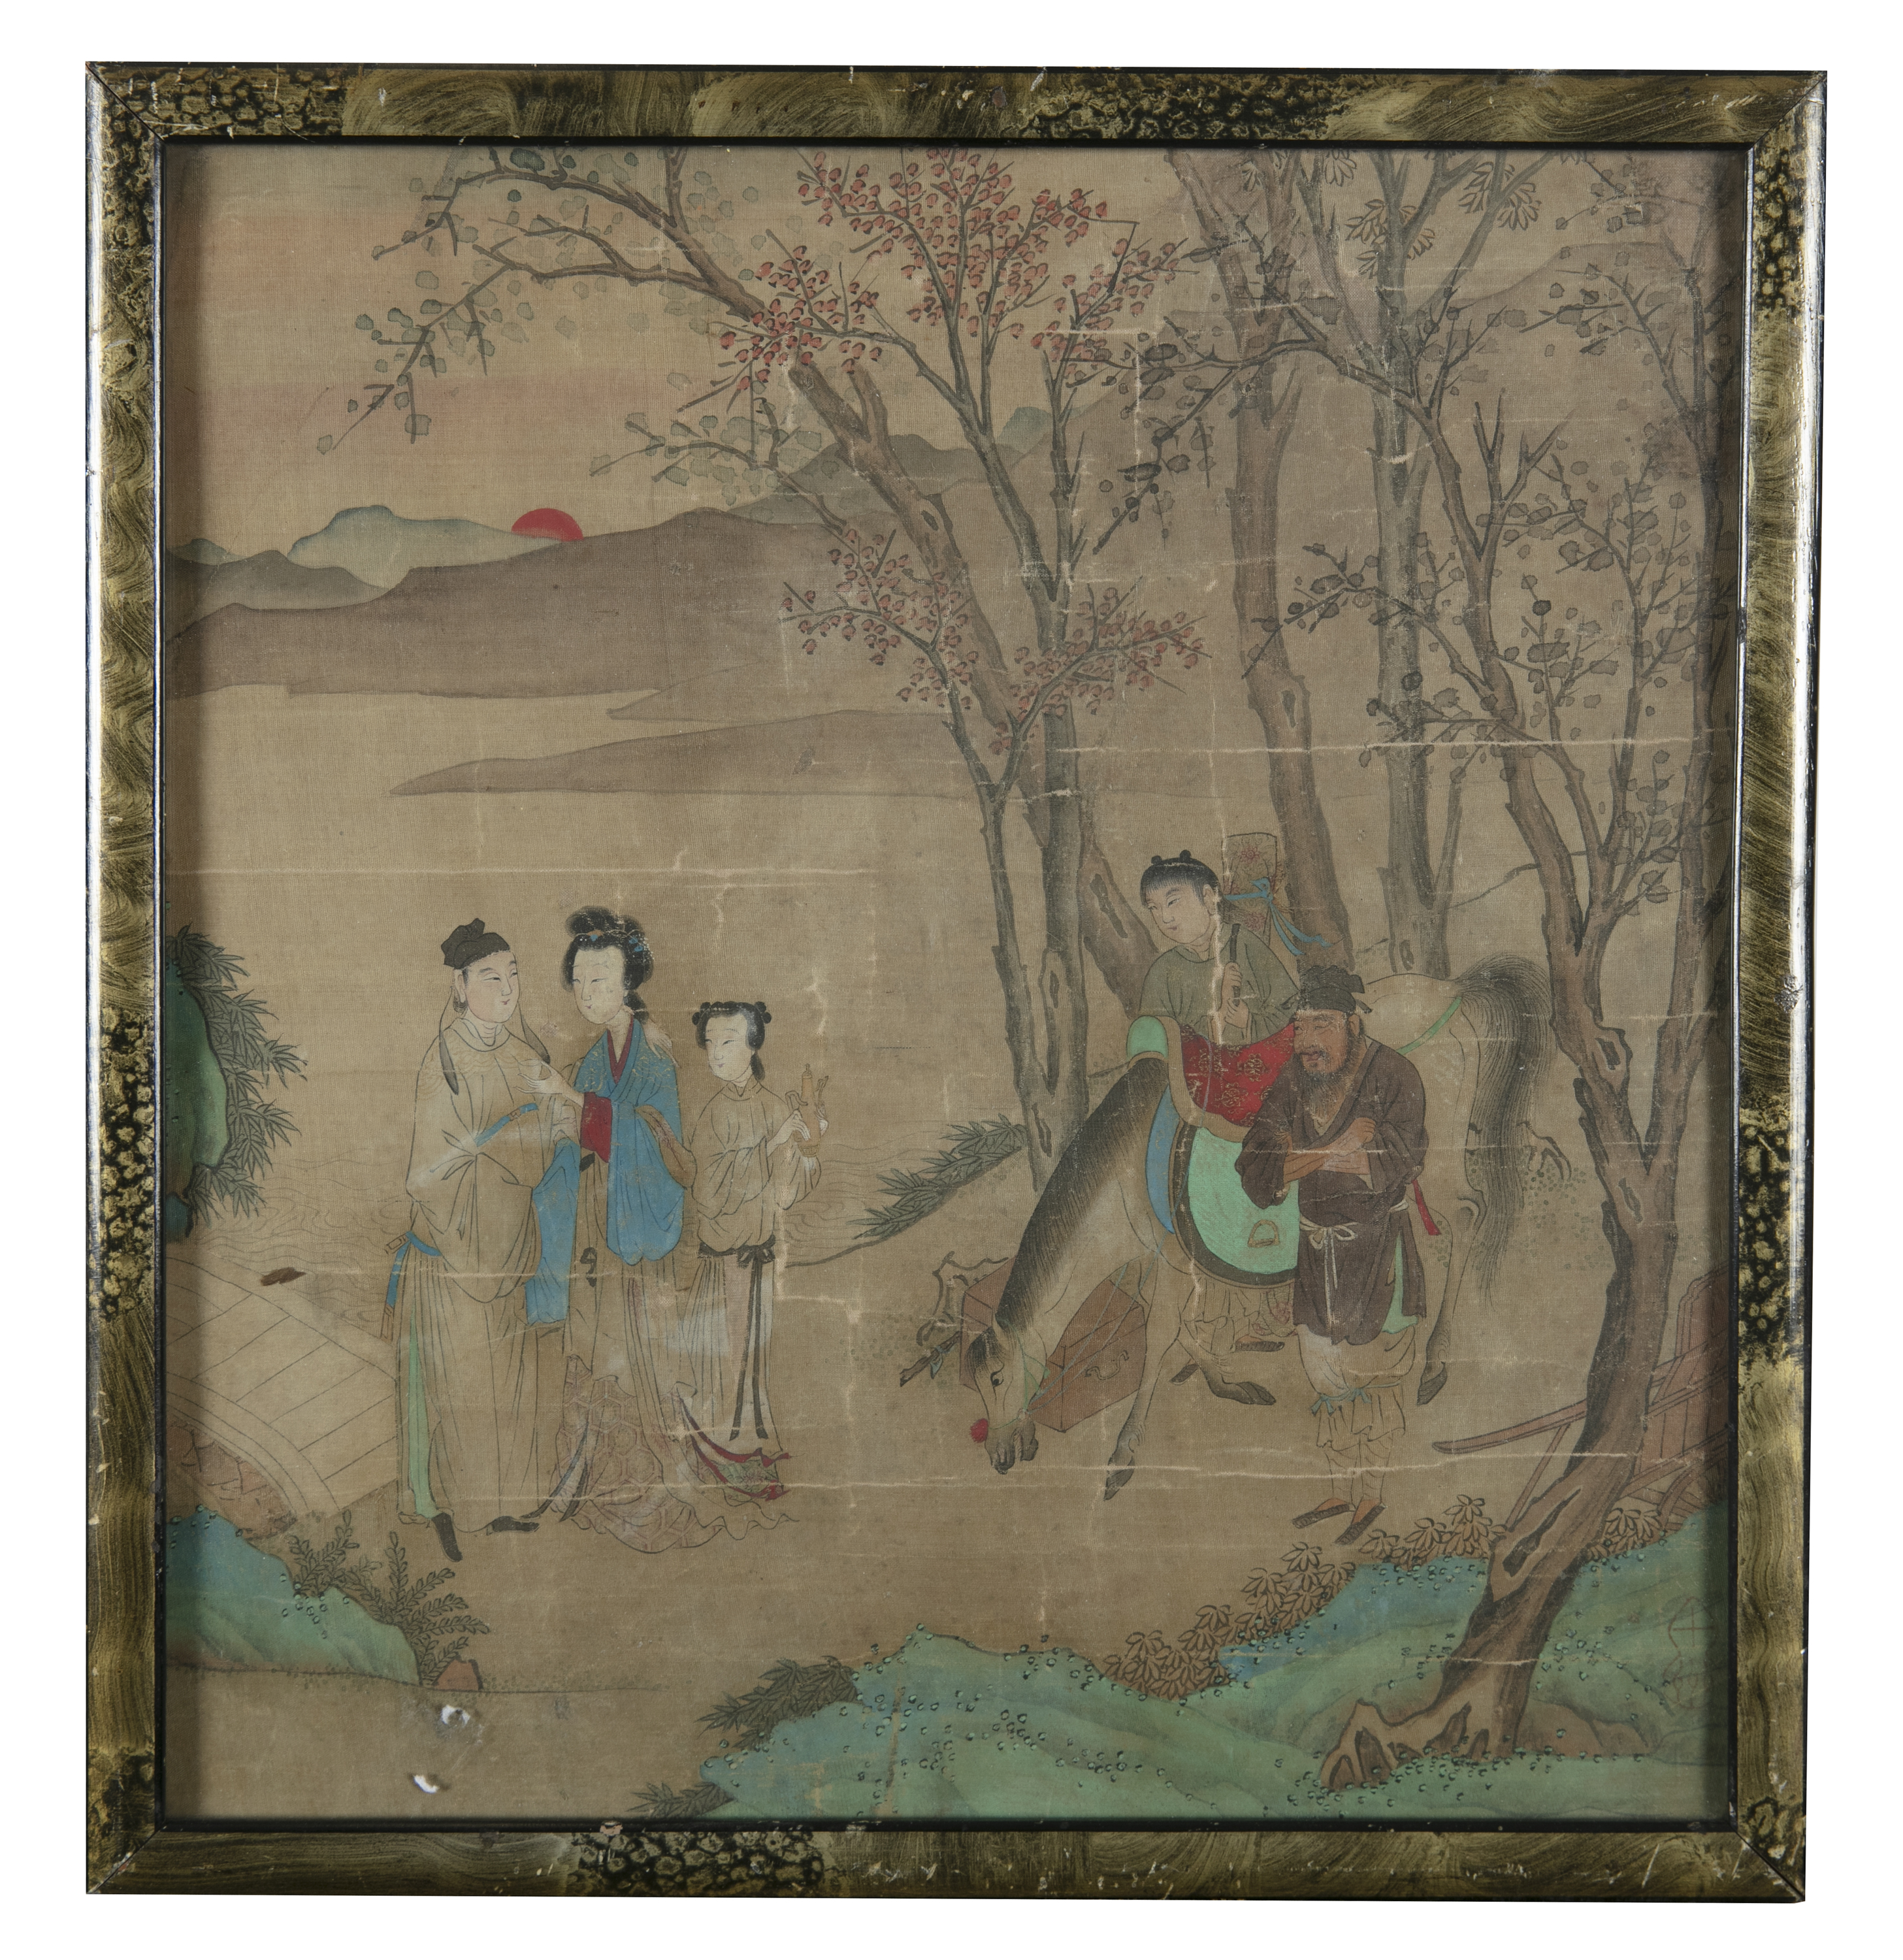 CHINESE SCHOOL, SEAL OF QIU YING 仇英 (1494-1552) Lady and attendants in a landscape at dawn - Image 7 of 10